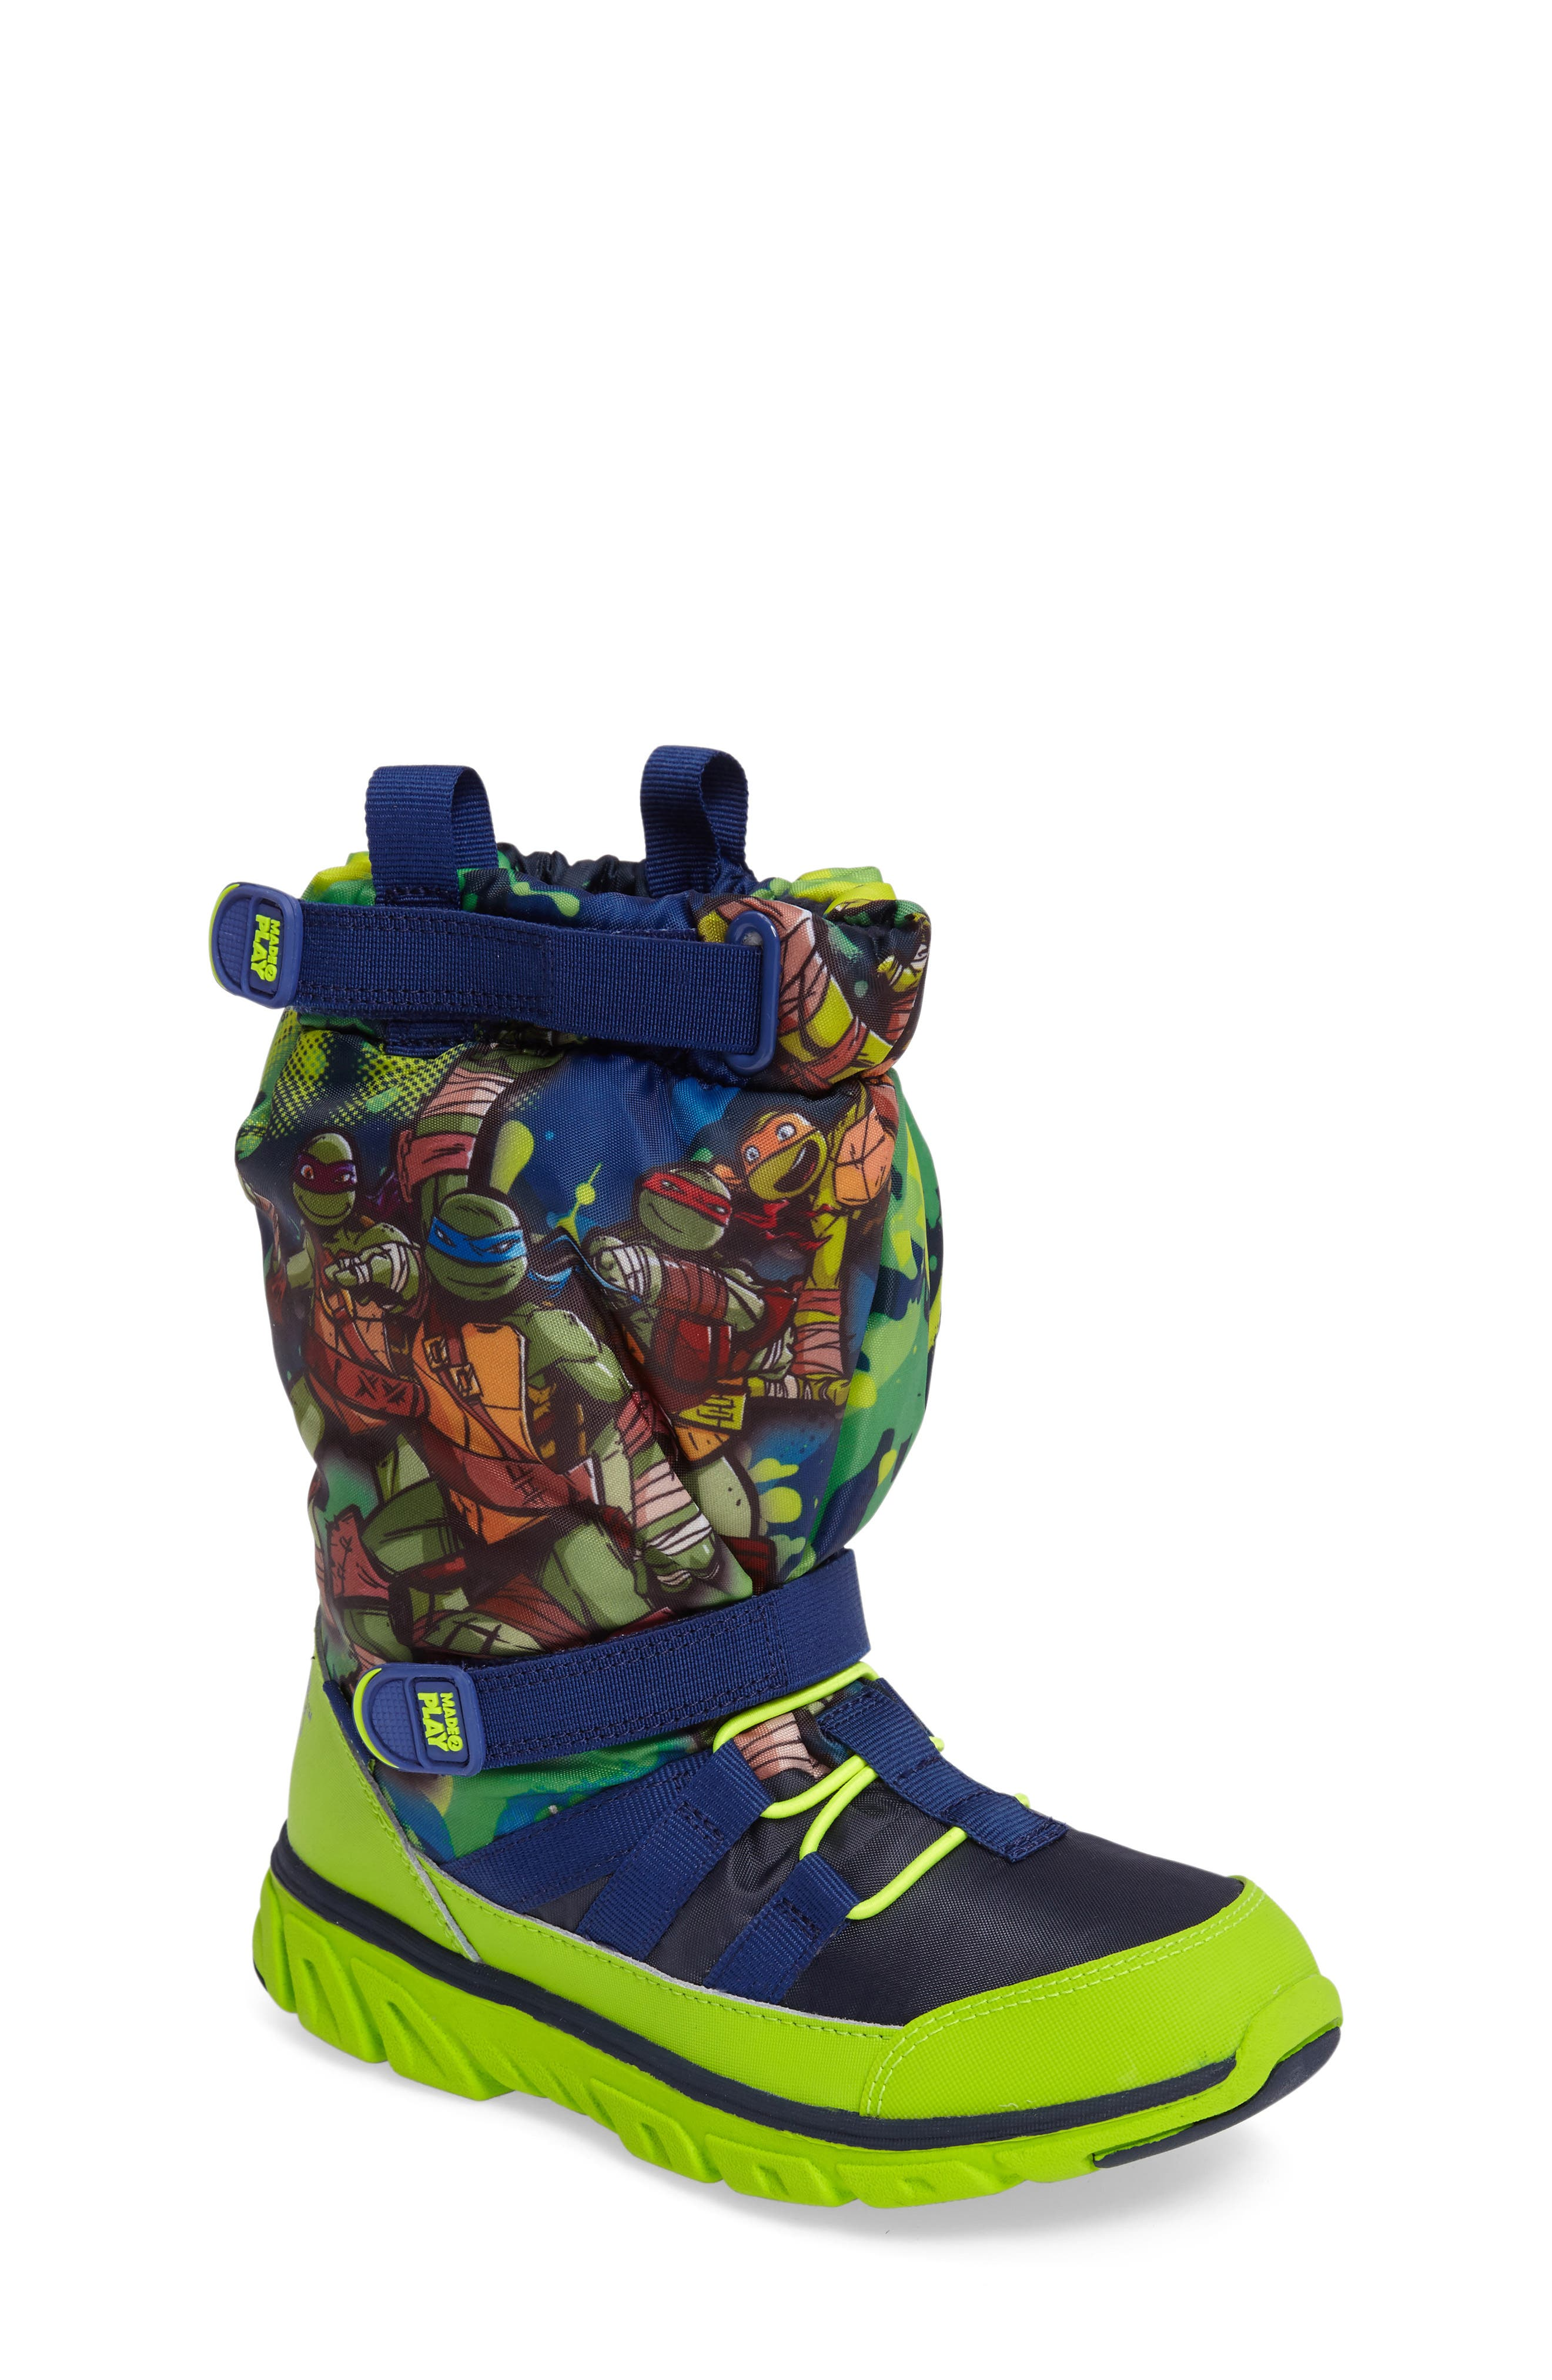 Alternate Image 1 Selected - Stride Rite Made2Play Teenage Mutant Ninja Turtles Sneaker Boot (Baby, Walker, Toddler & Little Kid)